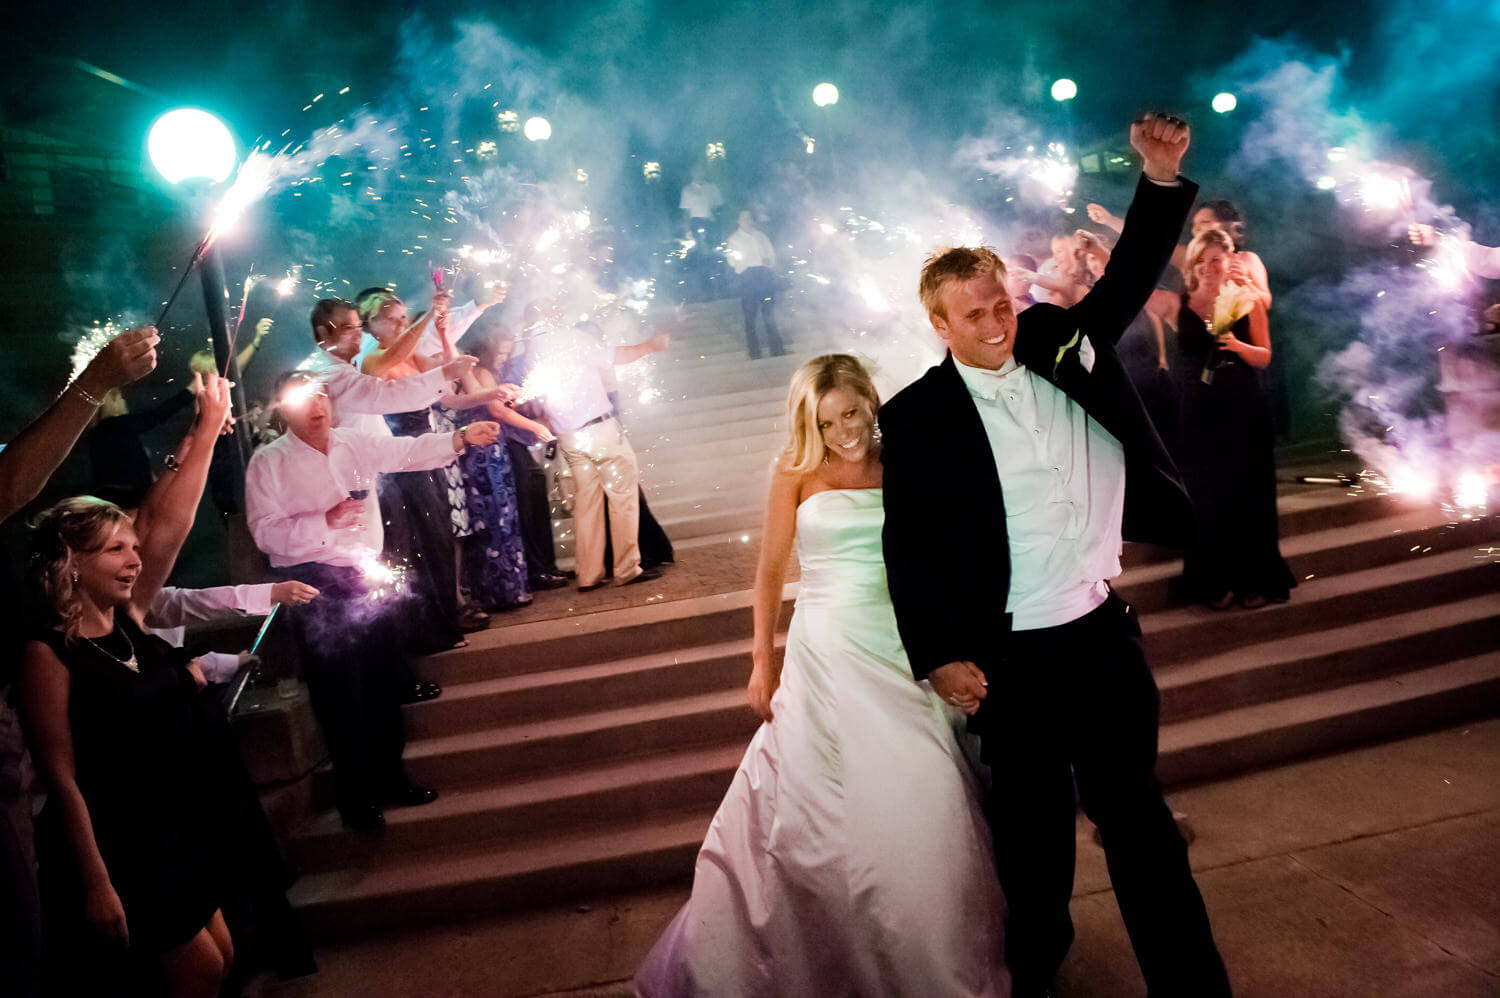 sparklers-bride-groom.jpg